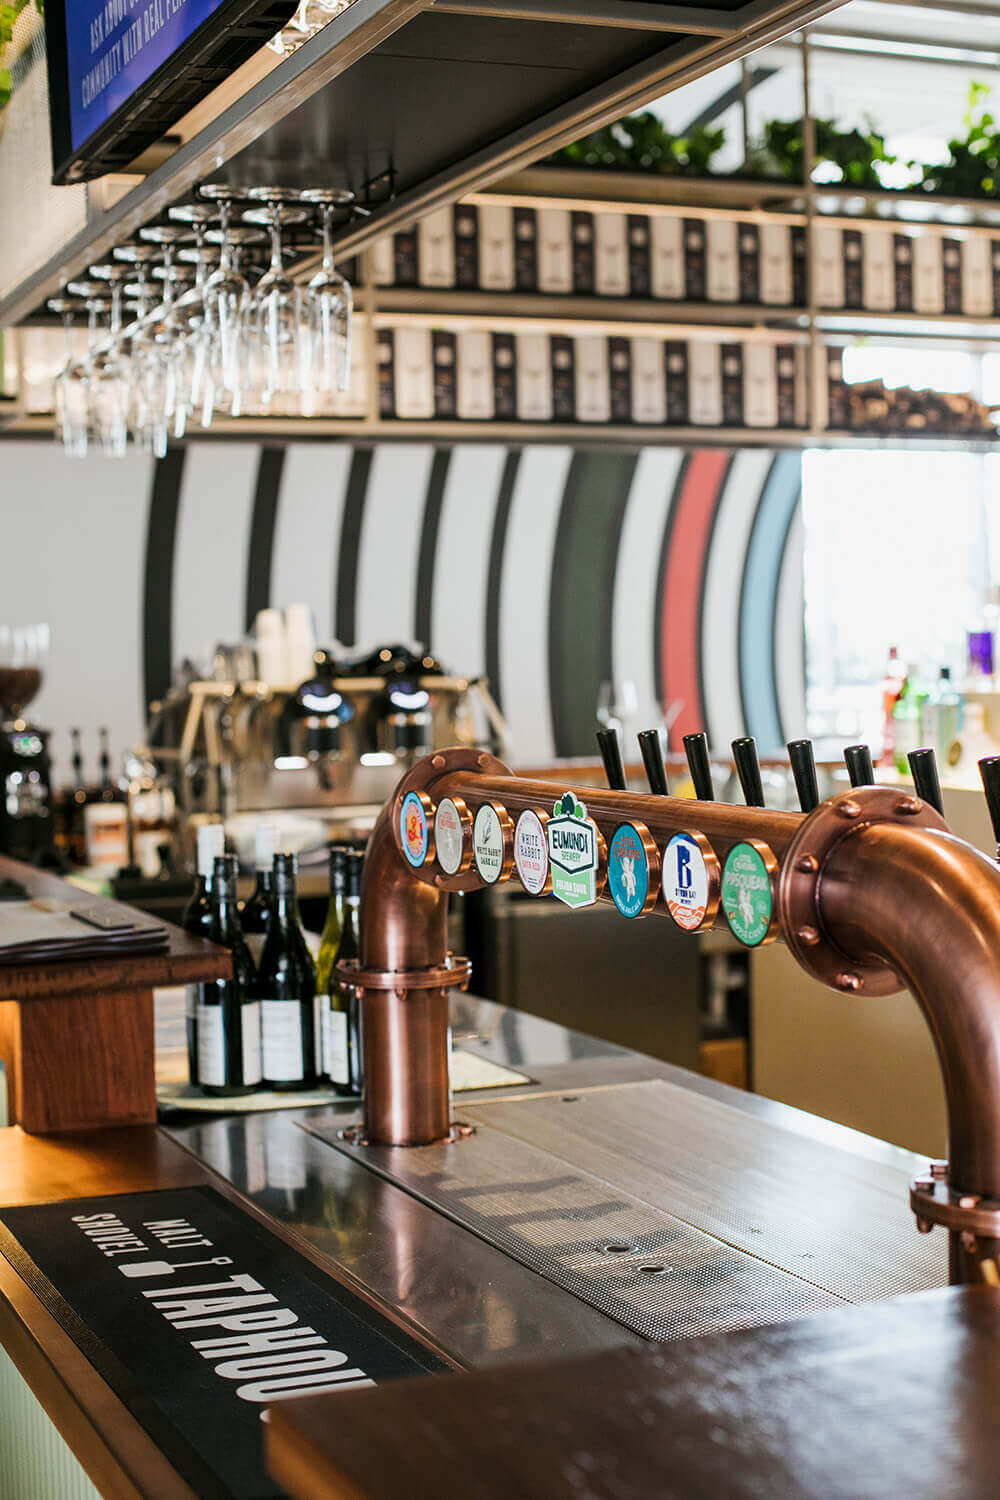 An extensive range craft beers on tap